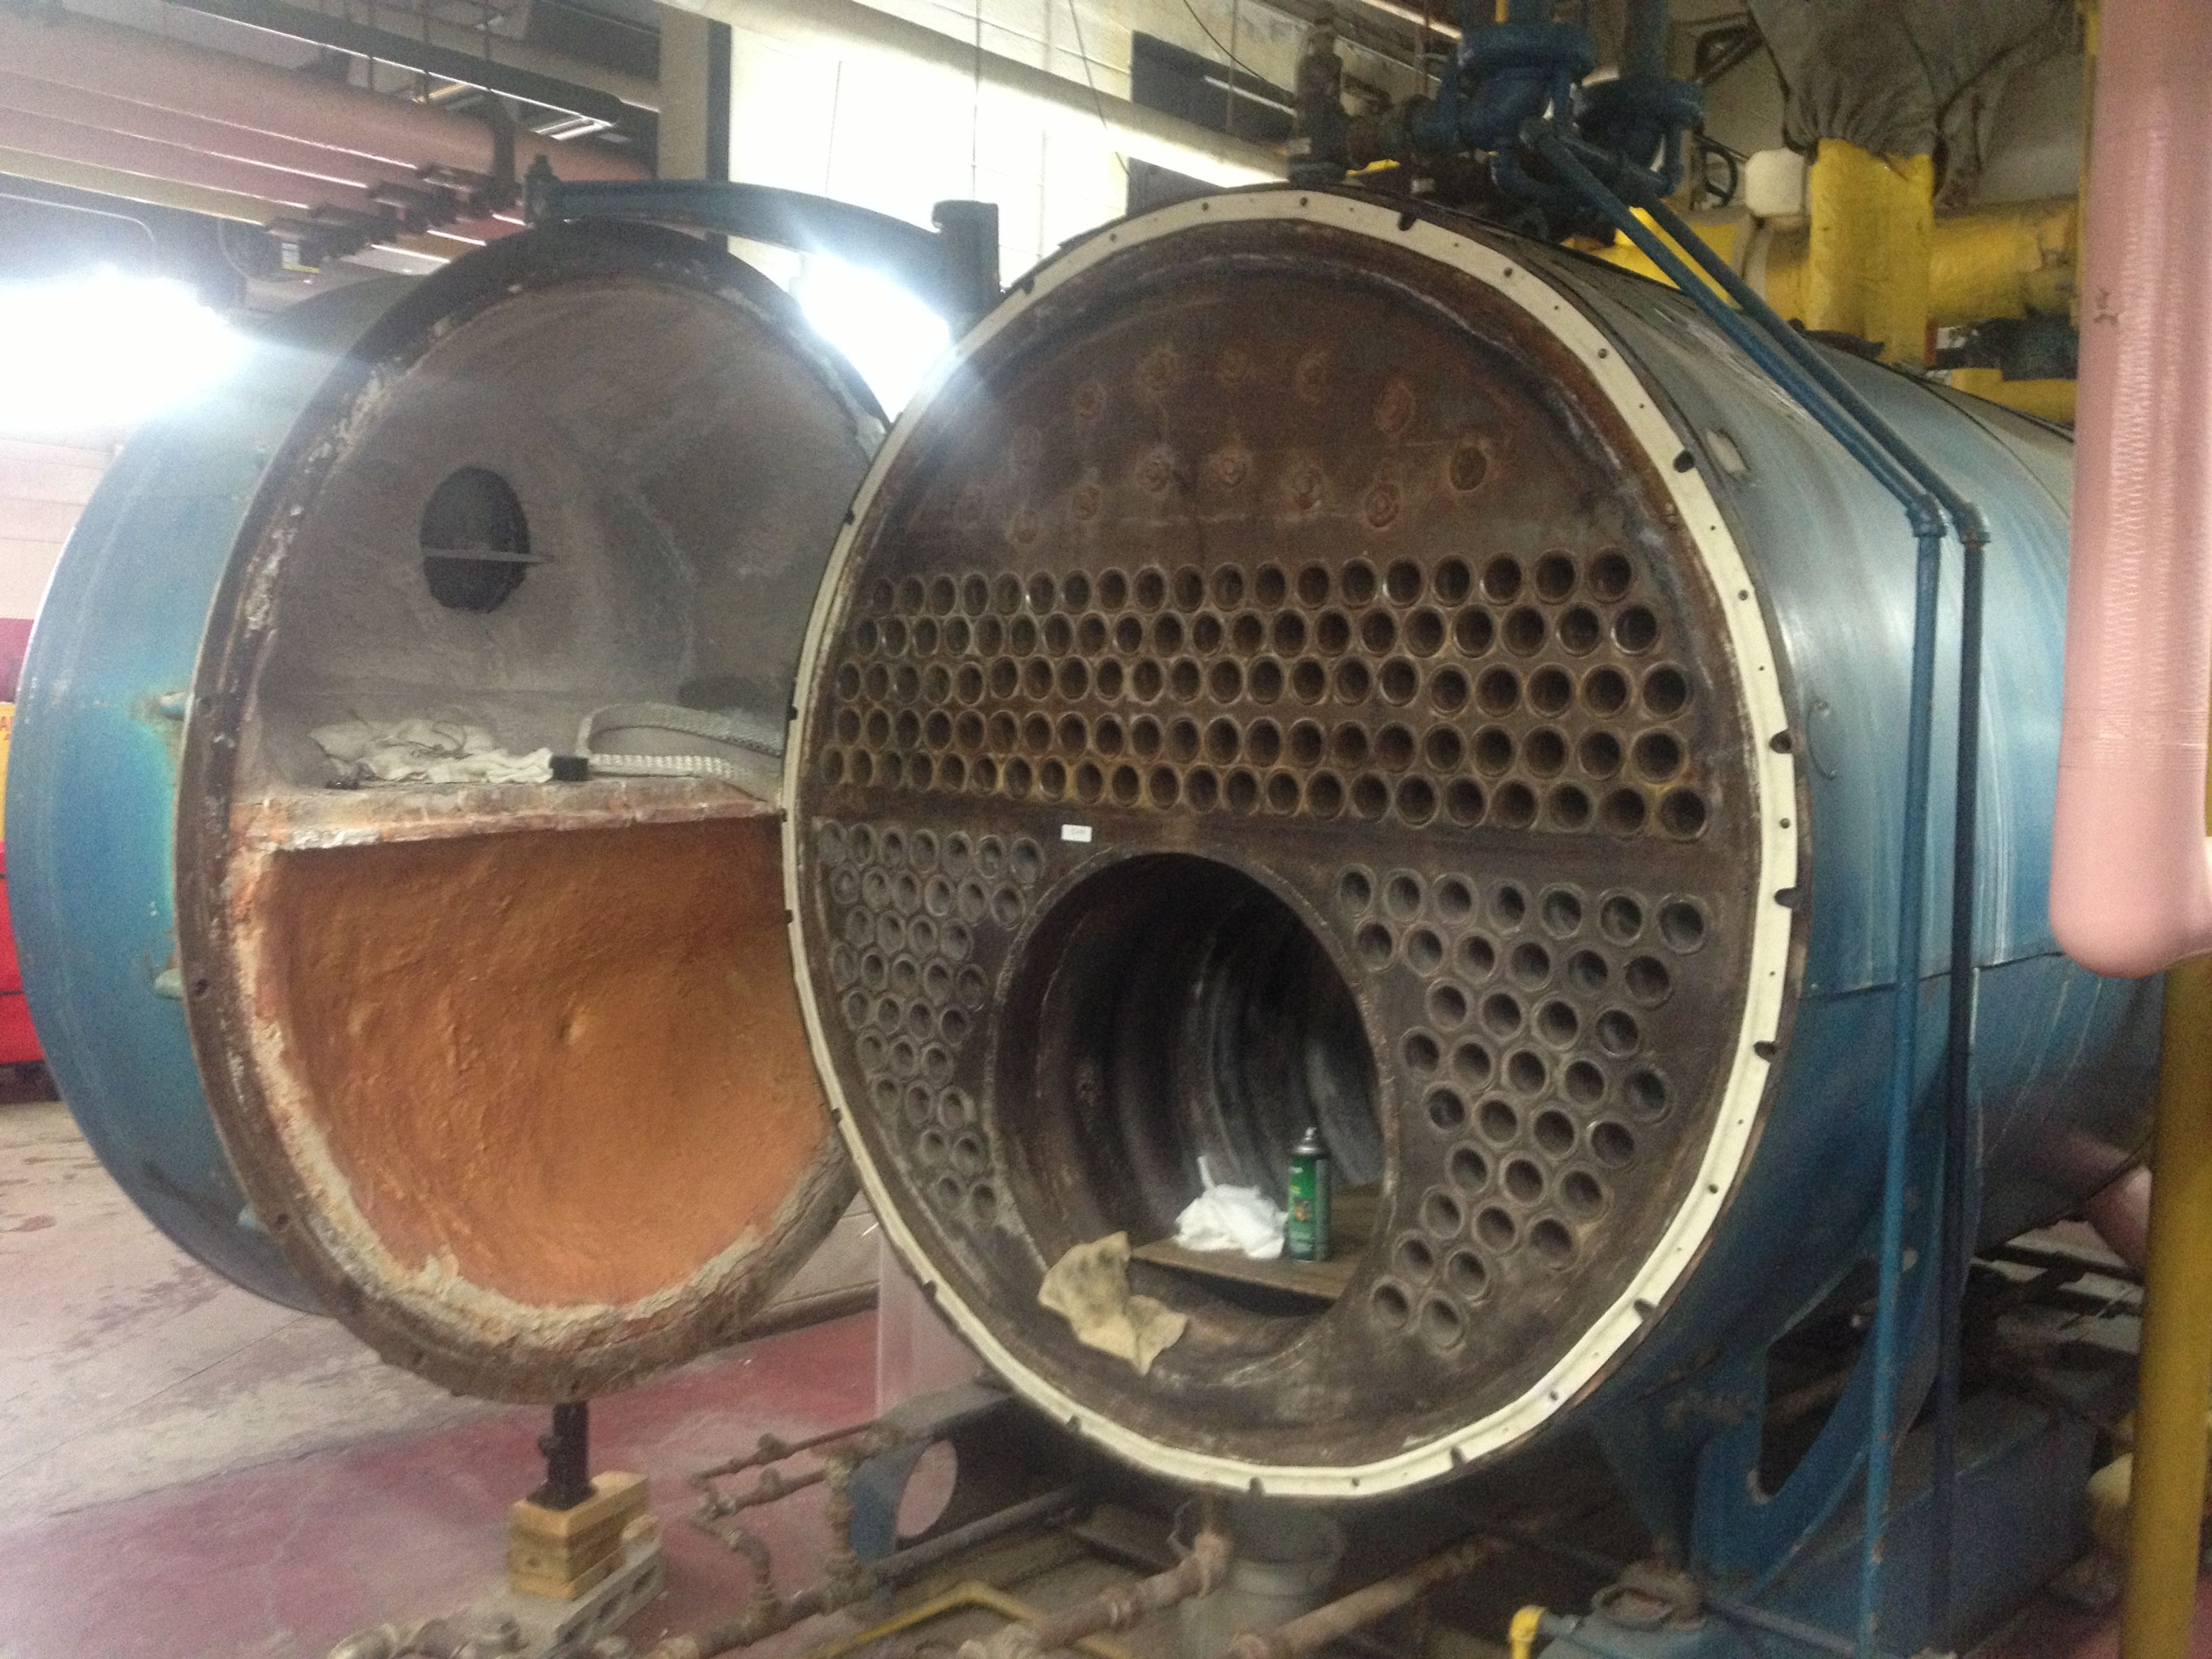 One Of The Old Cleaver Brooks Opened For Cleaning Furnace Repair Boiler Boilermaker